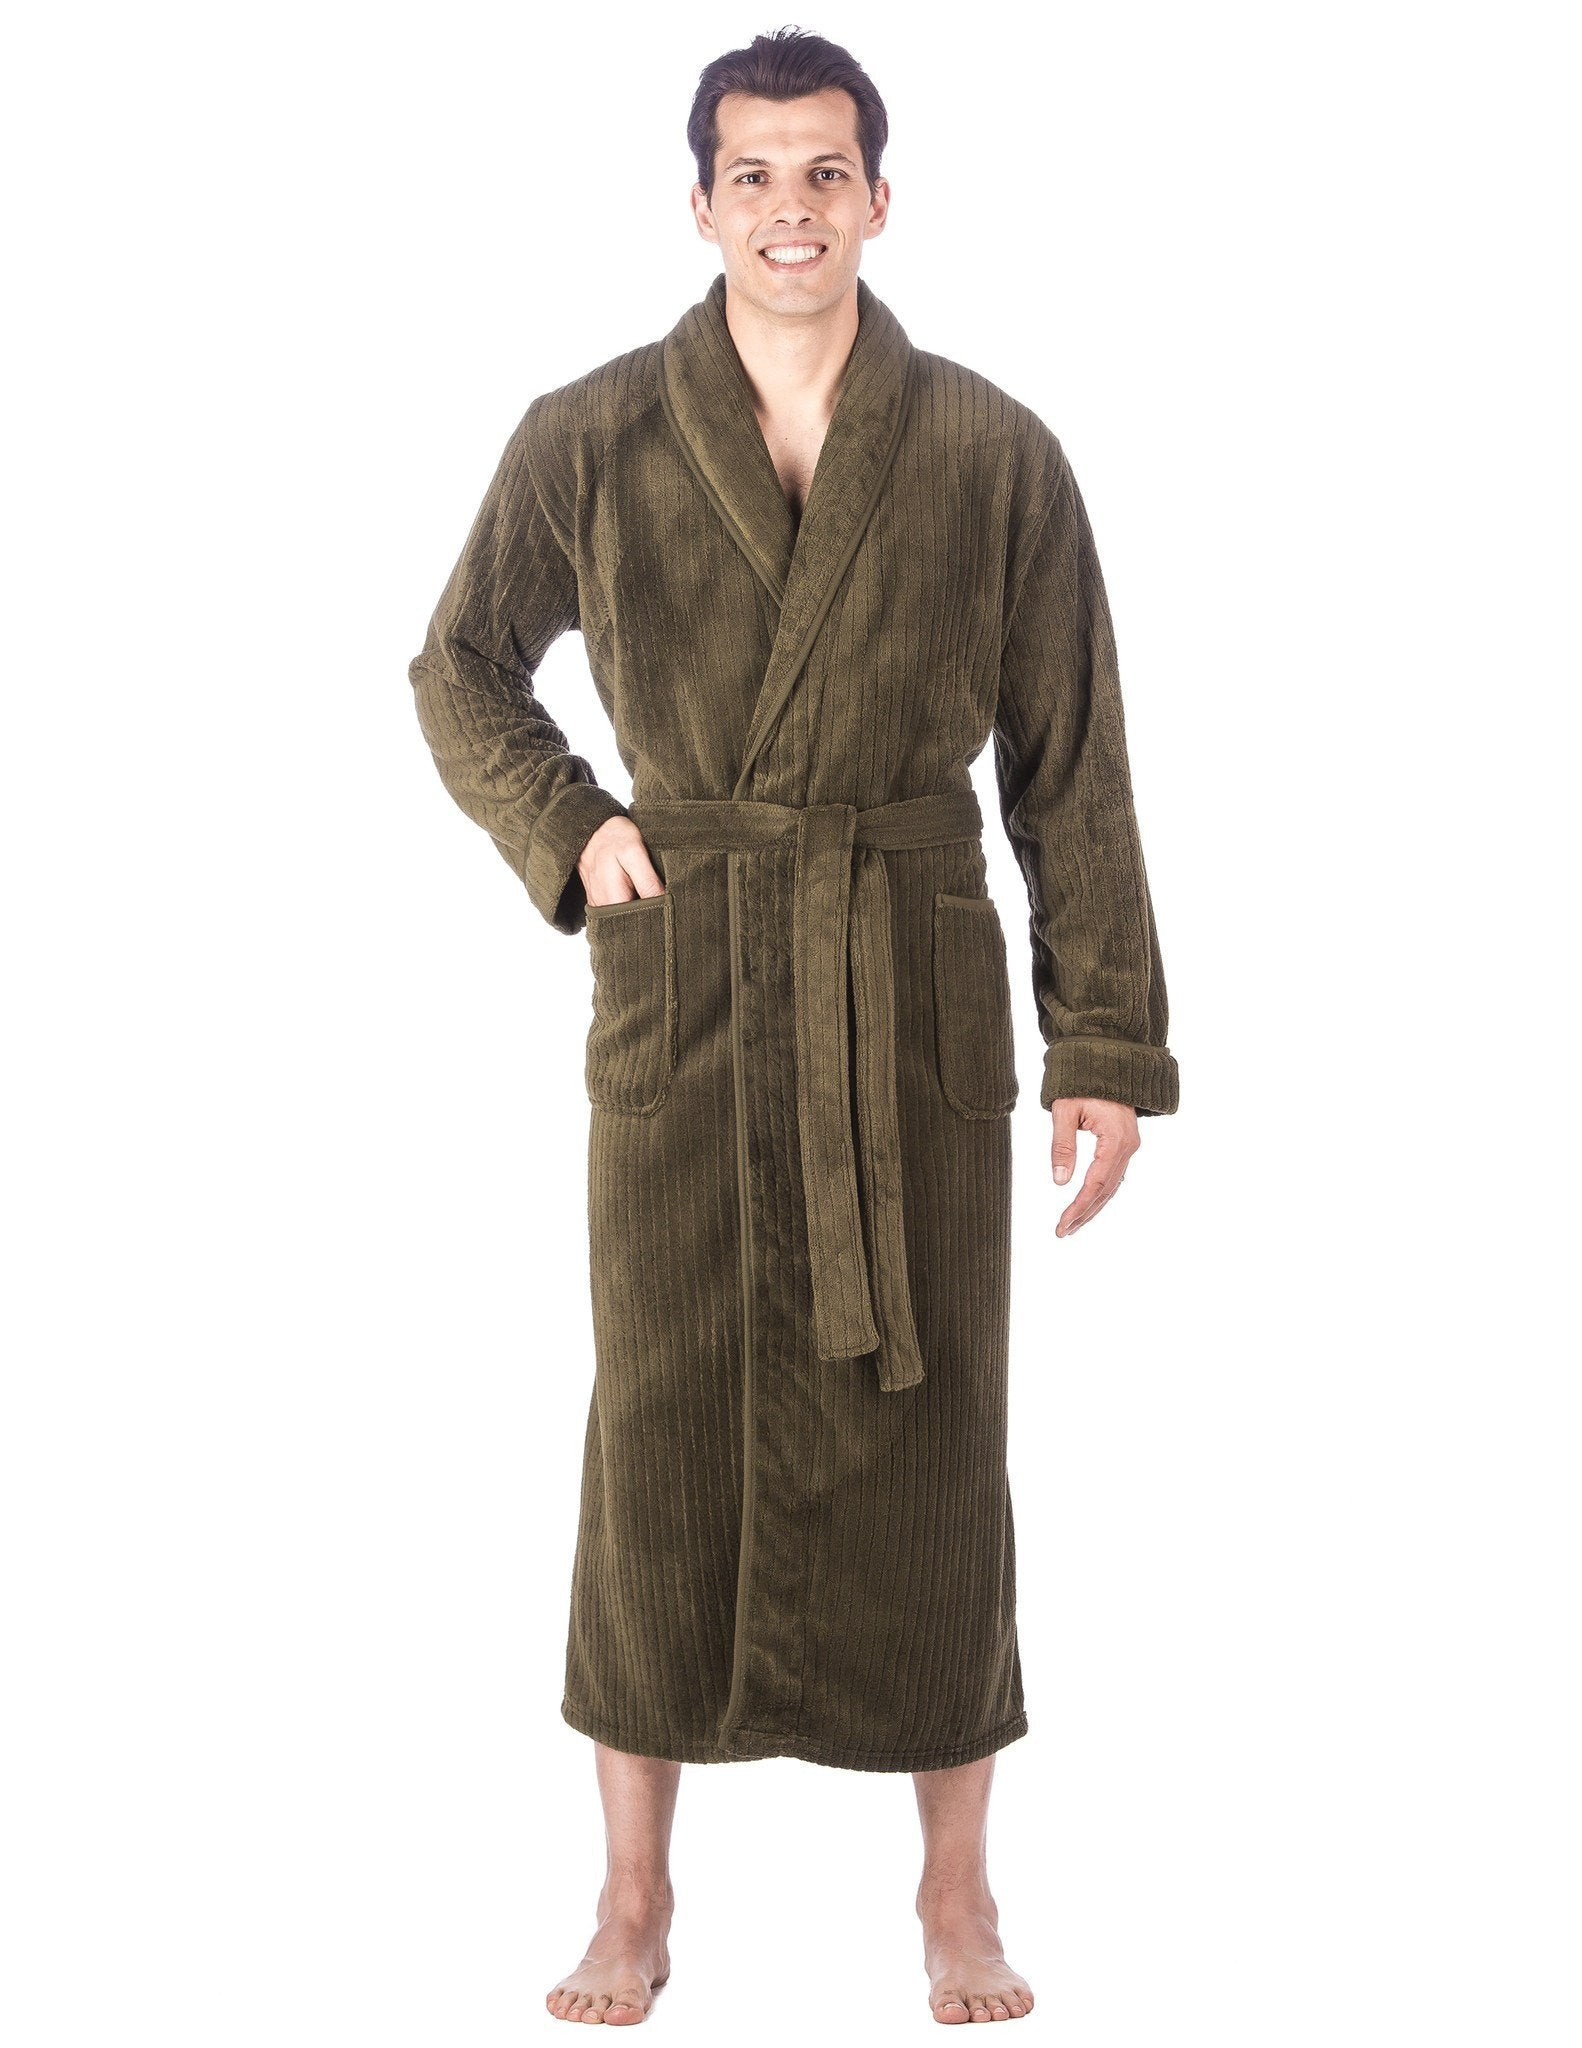 Men's Premium Coral Fleece Full Length Plush Spa/Bath Robe - Olive